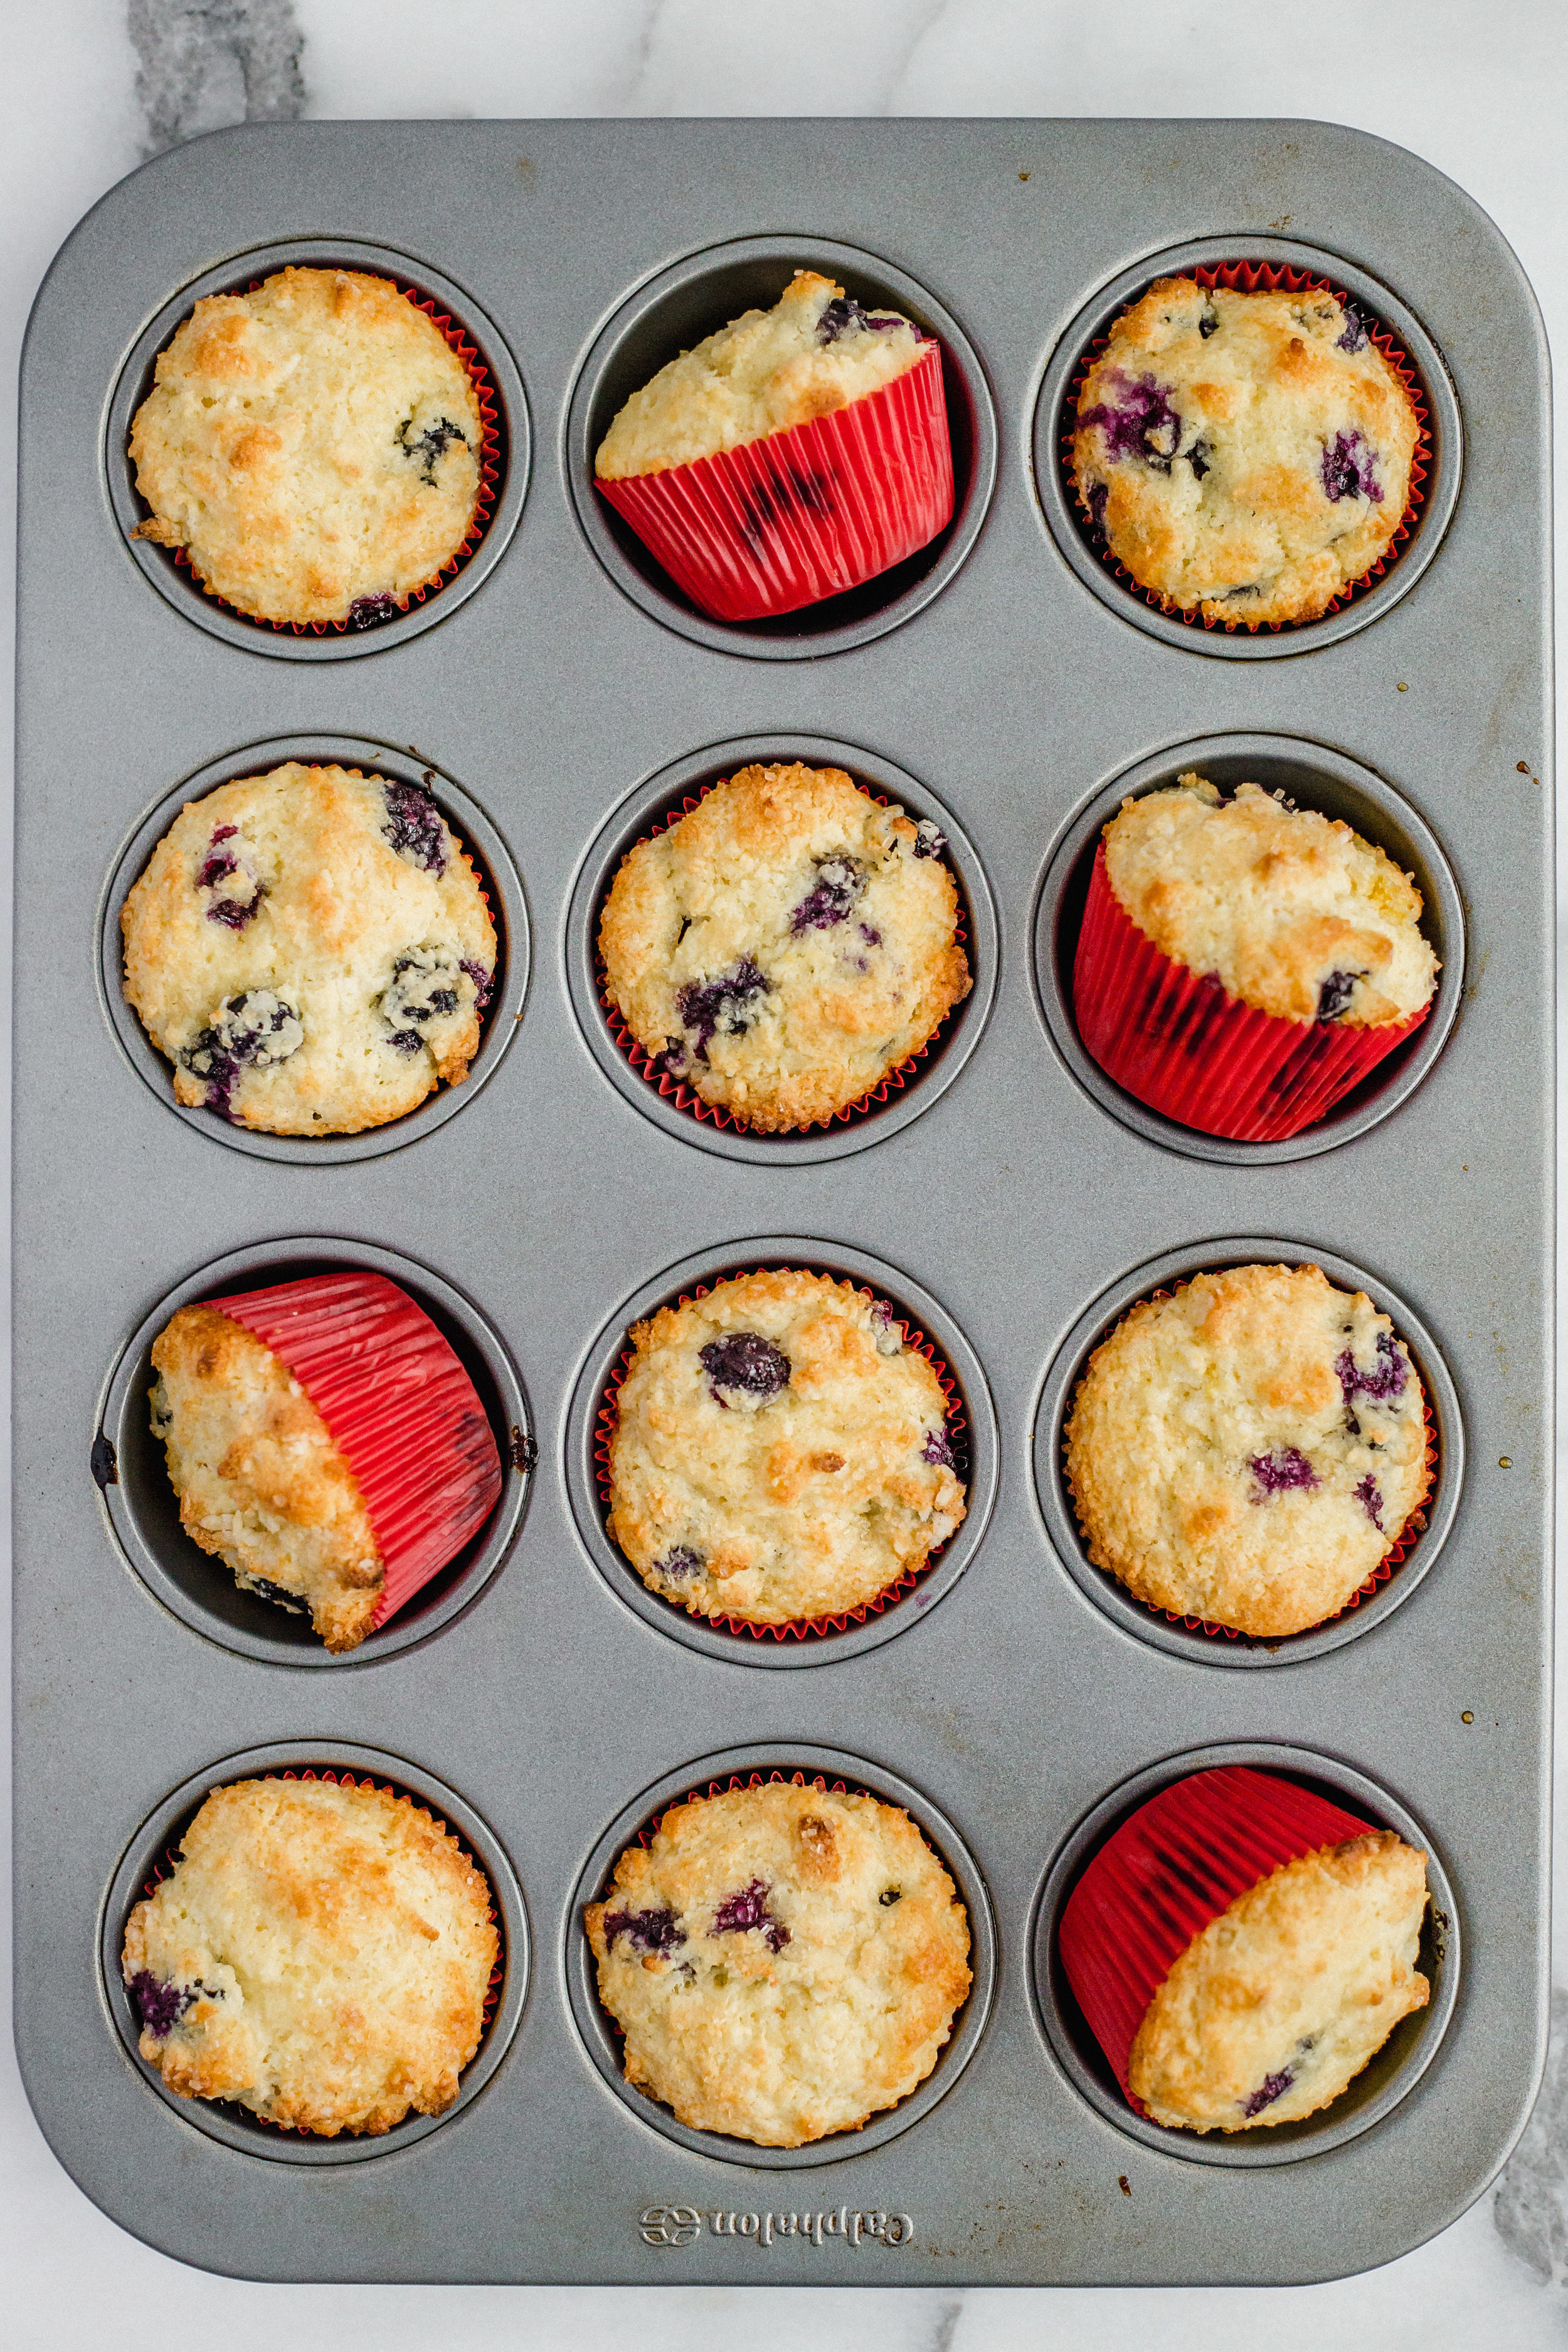 lemon_blueberry_muffins-5.jpg